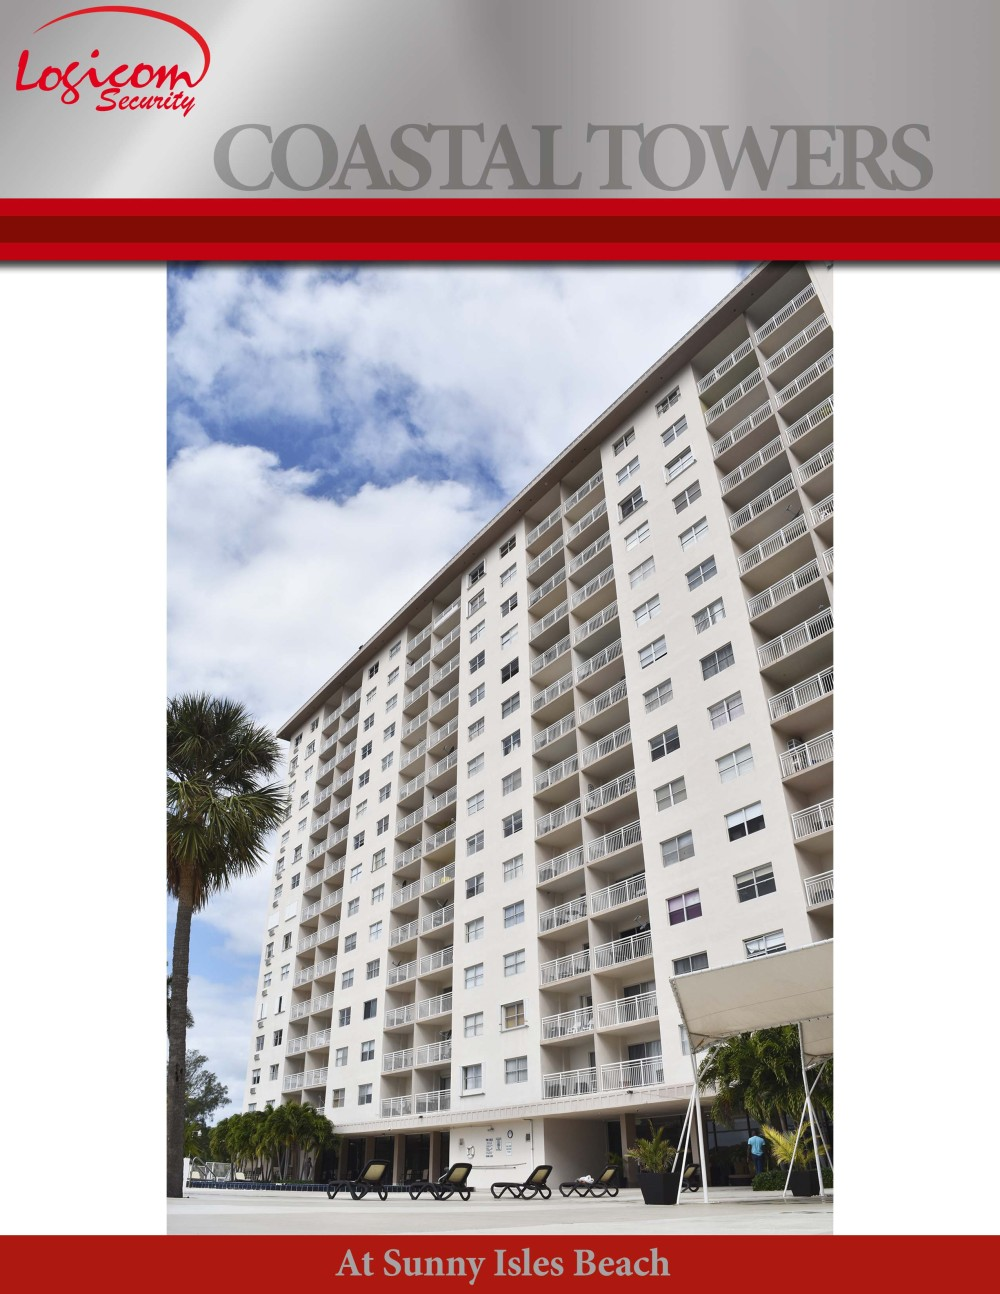 CoastalTowers